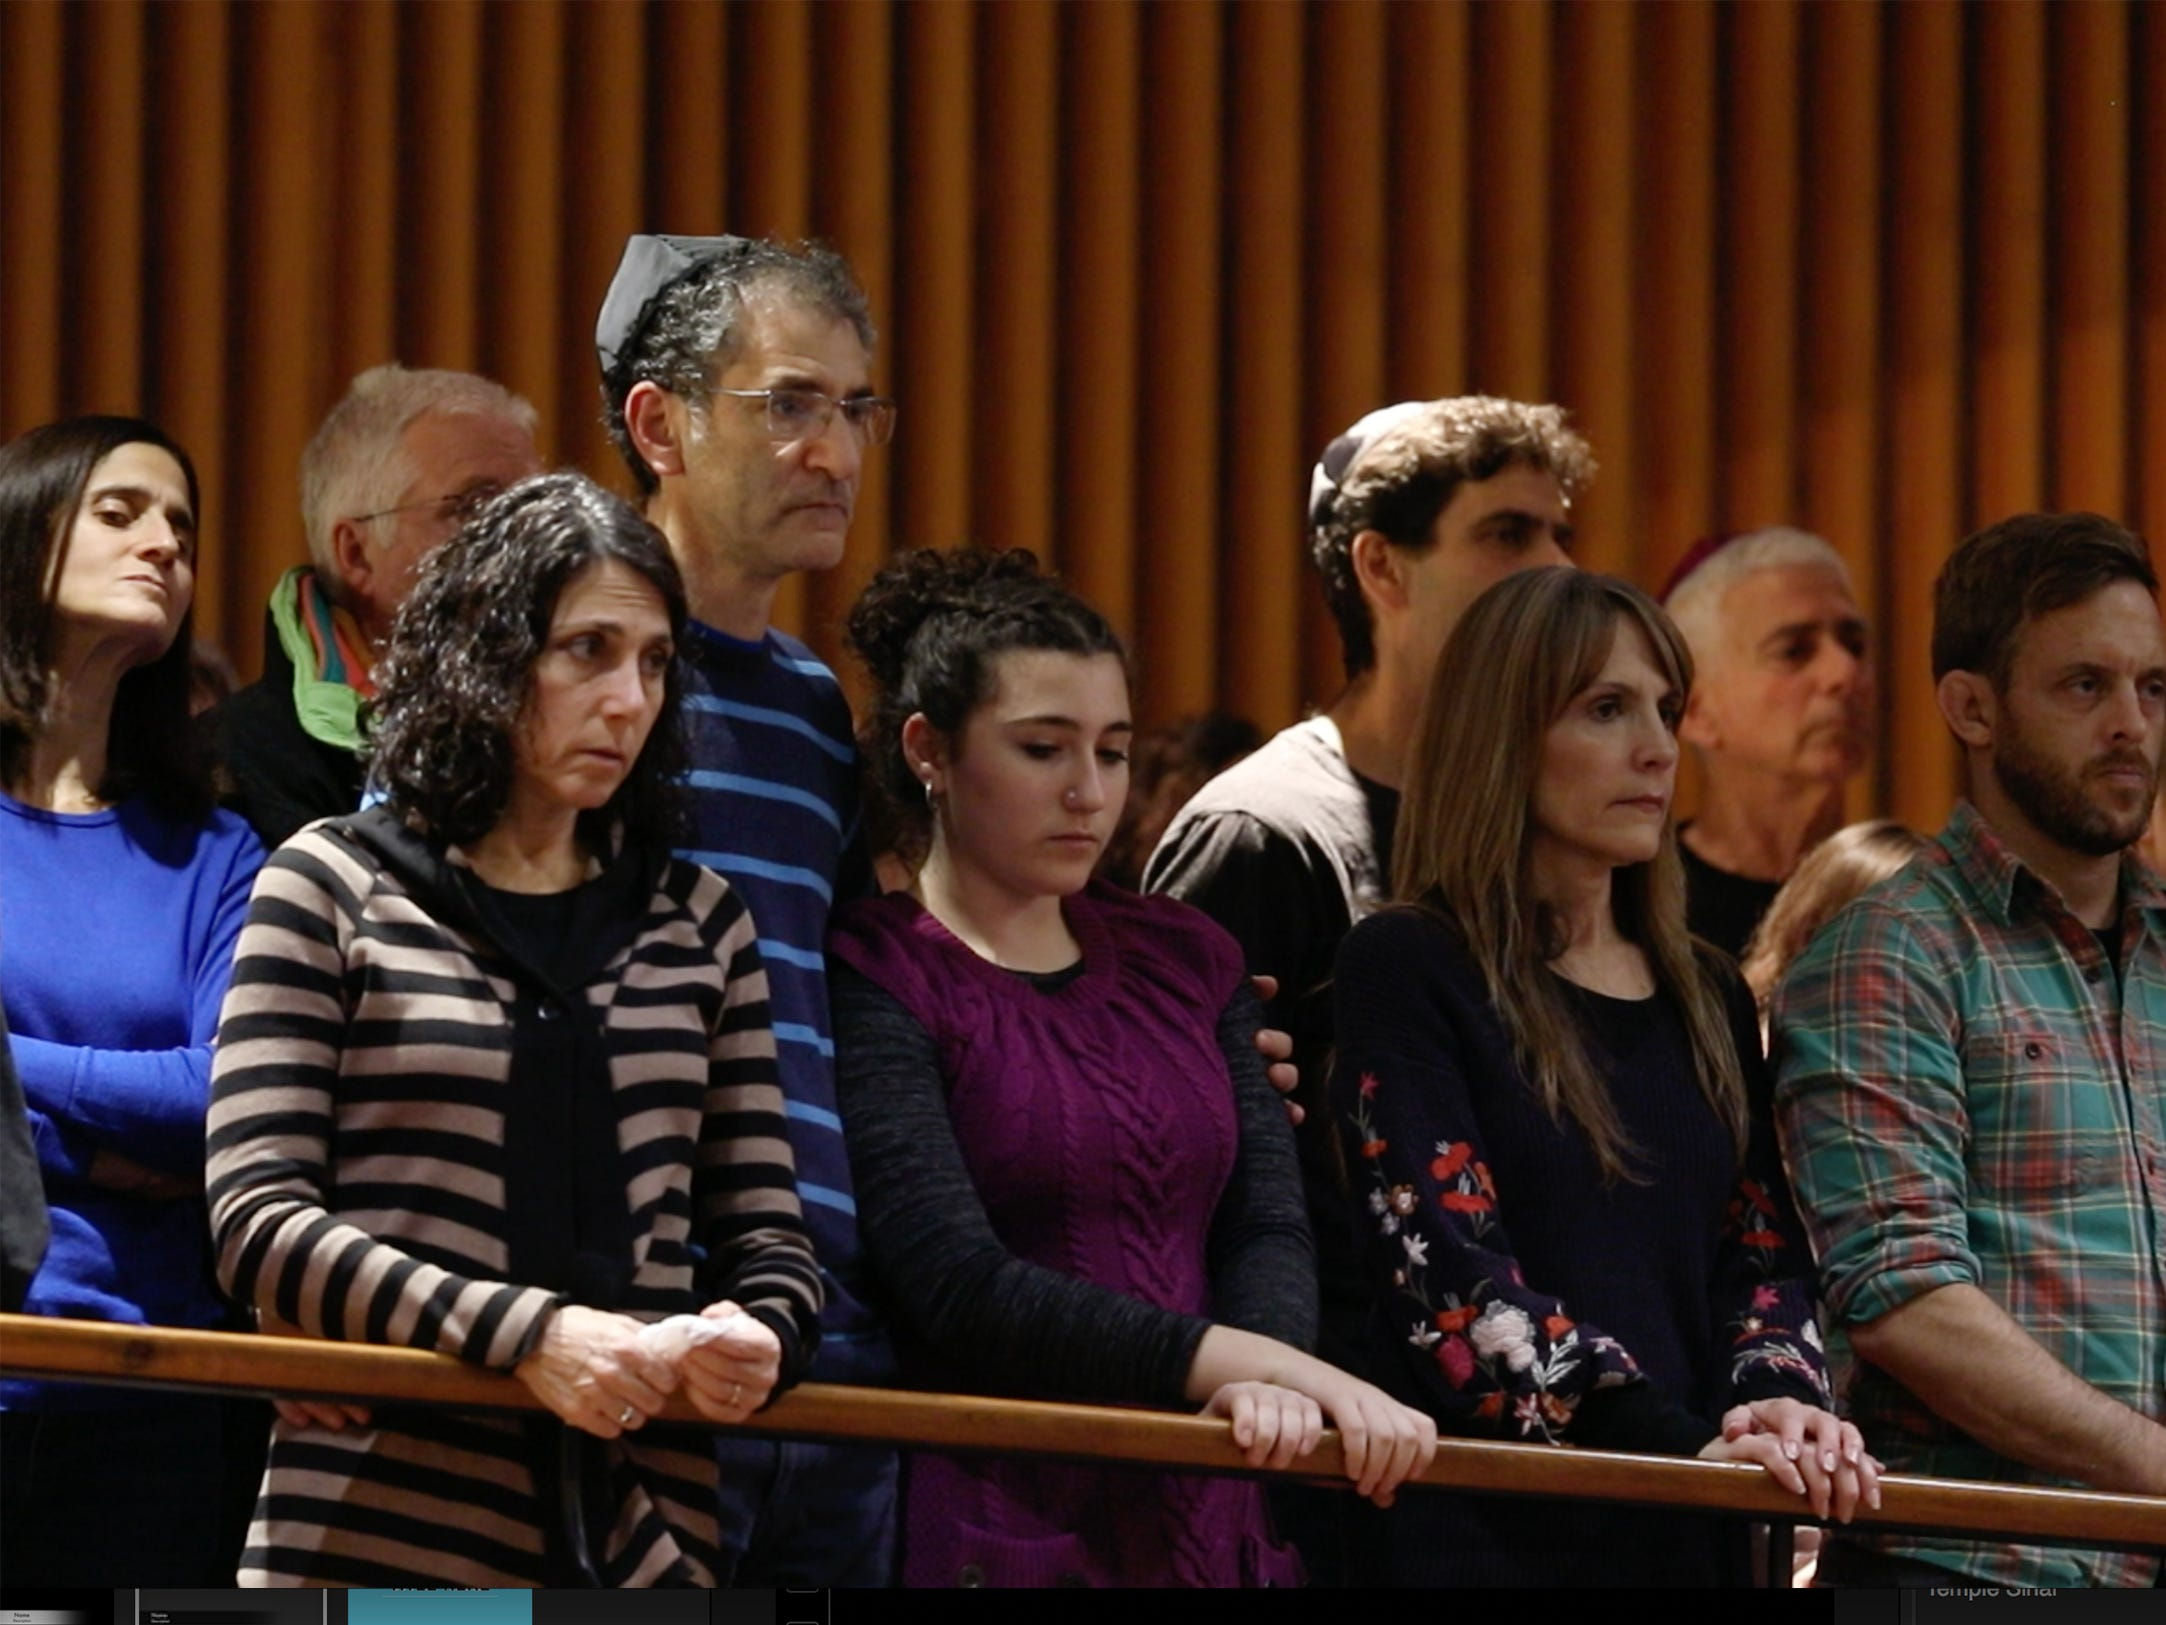 People rise for the Kaddish for the victims of the Pittsburgh synagogue shooting.